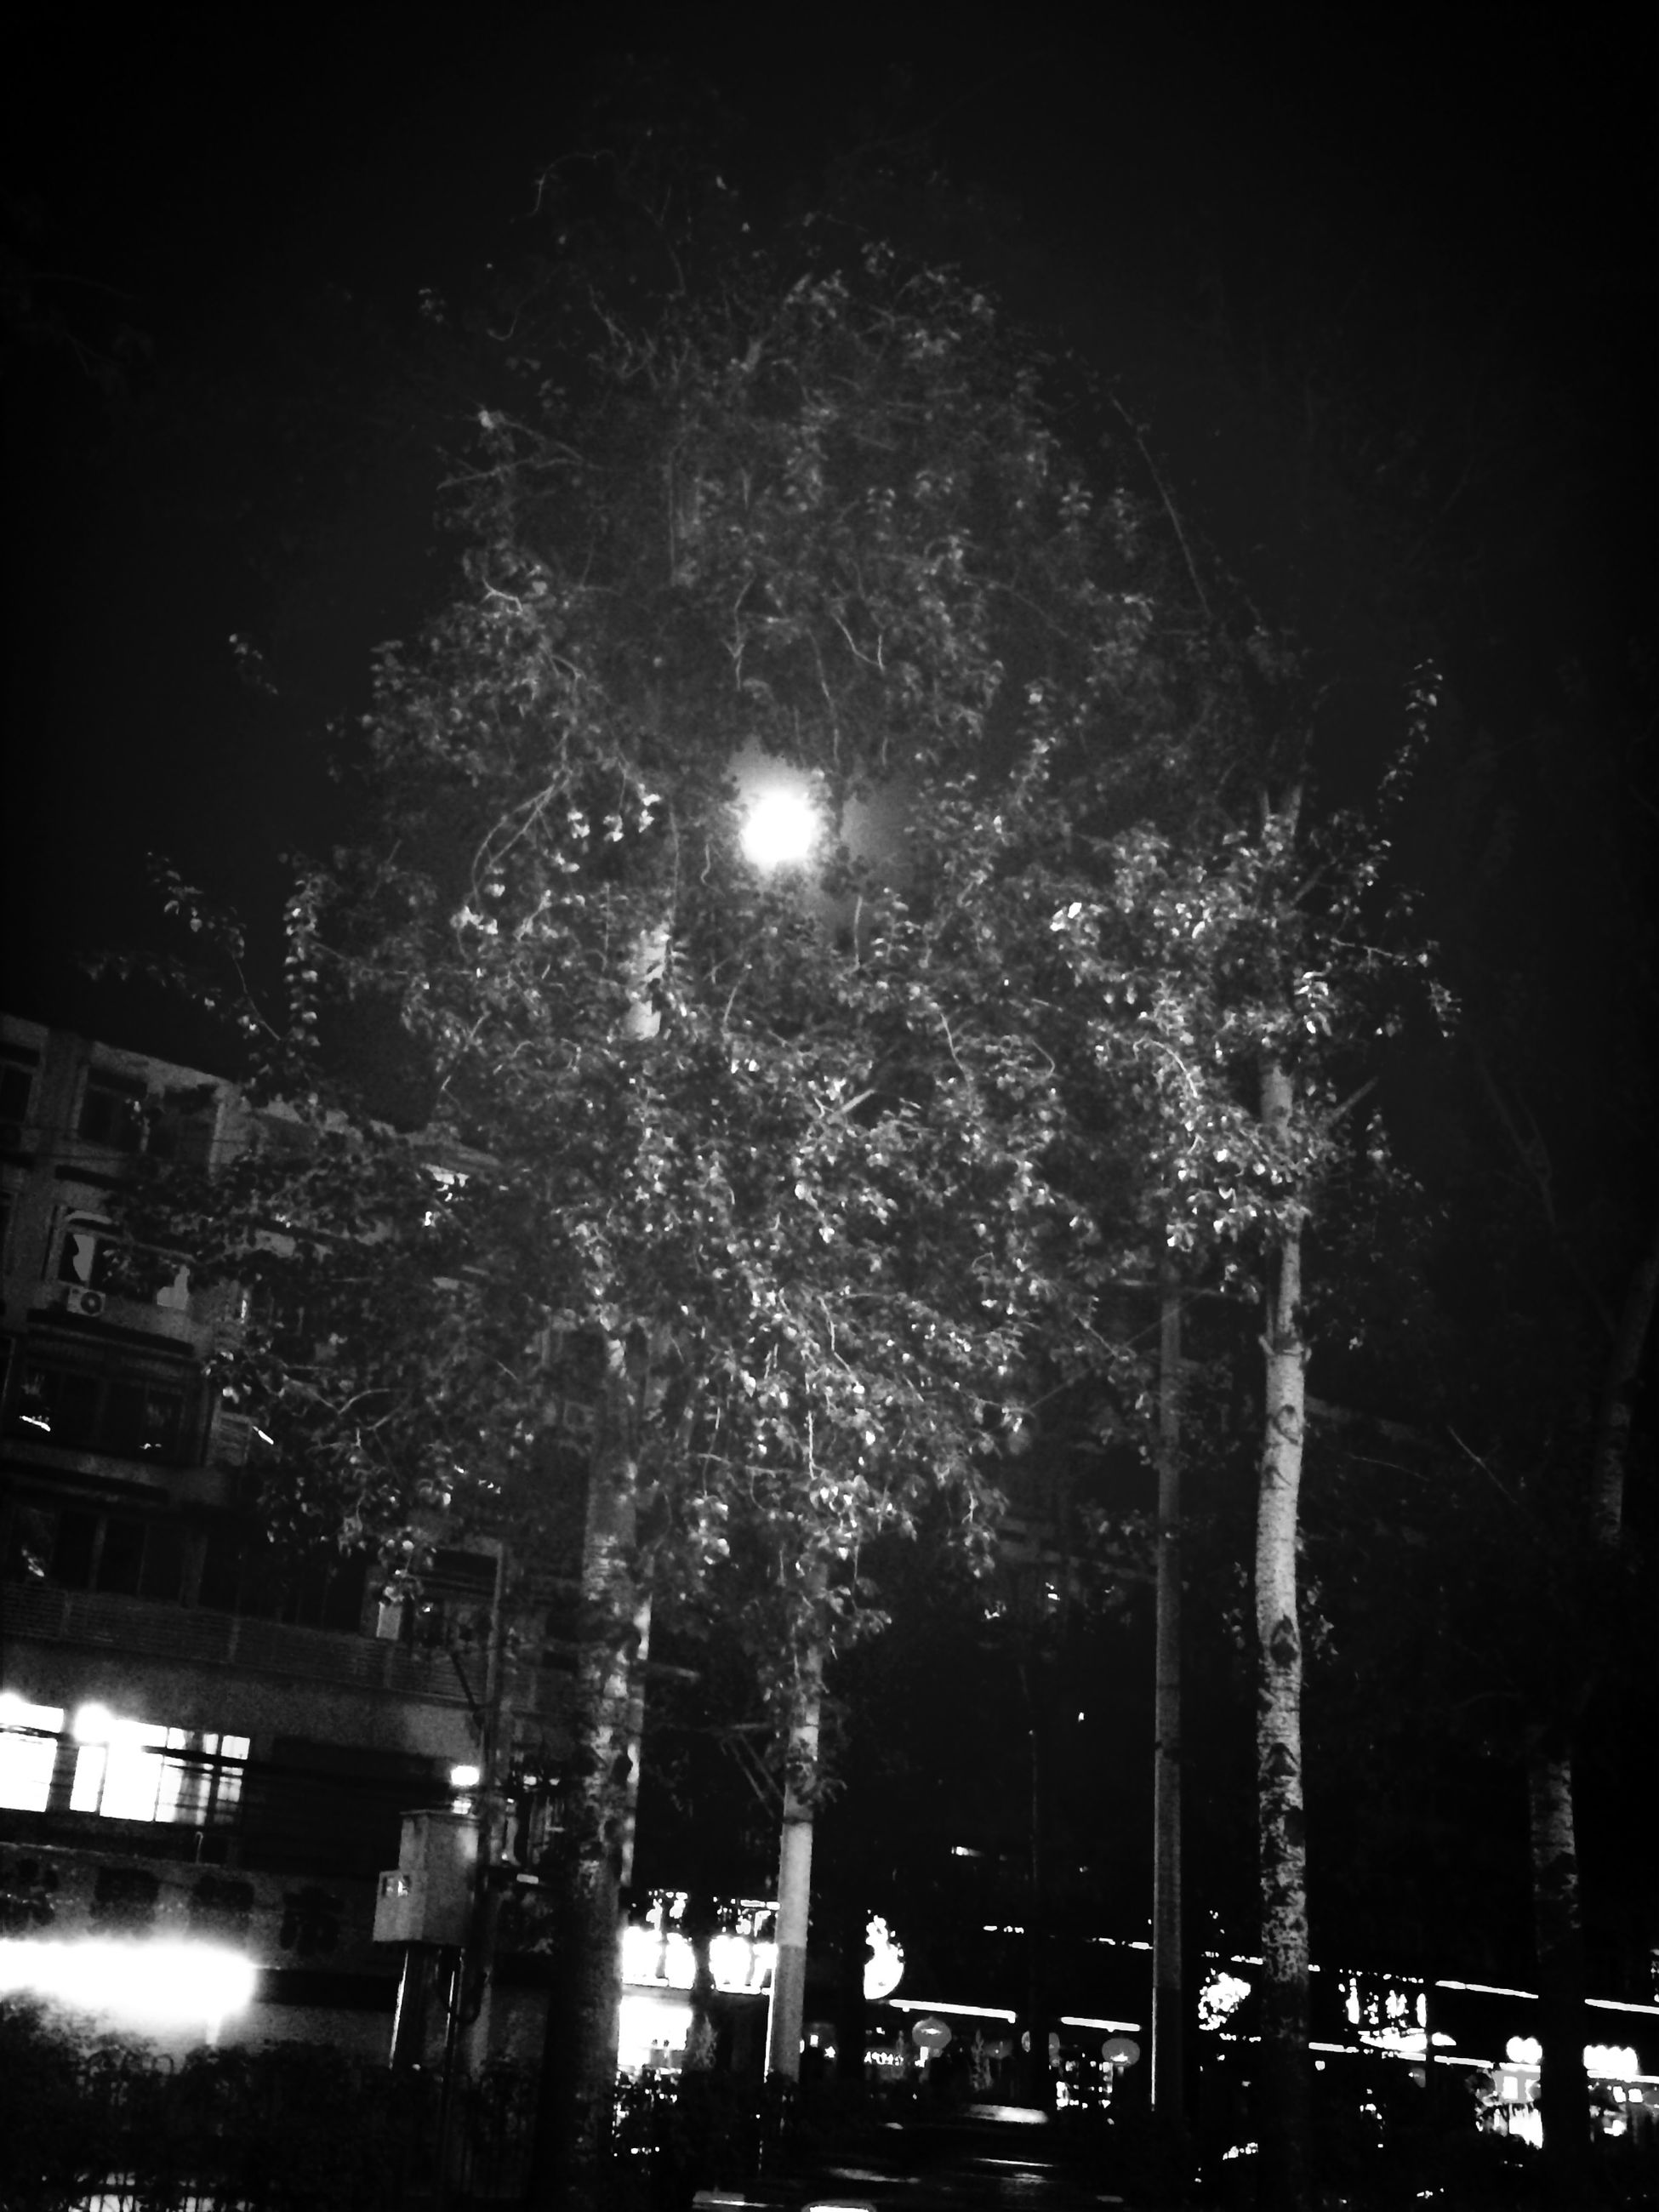 night, tree, illuminated, street light, low angle view, lighting equipment, sky, growth, branch, outdoors, light - natural phenomenon, street, nature, building exterior, built structure, glowing, car, no people, city, transportation